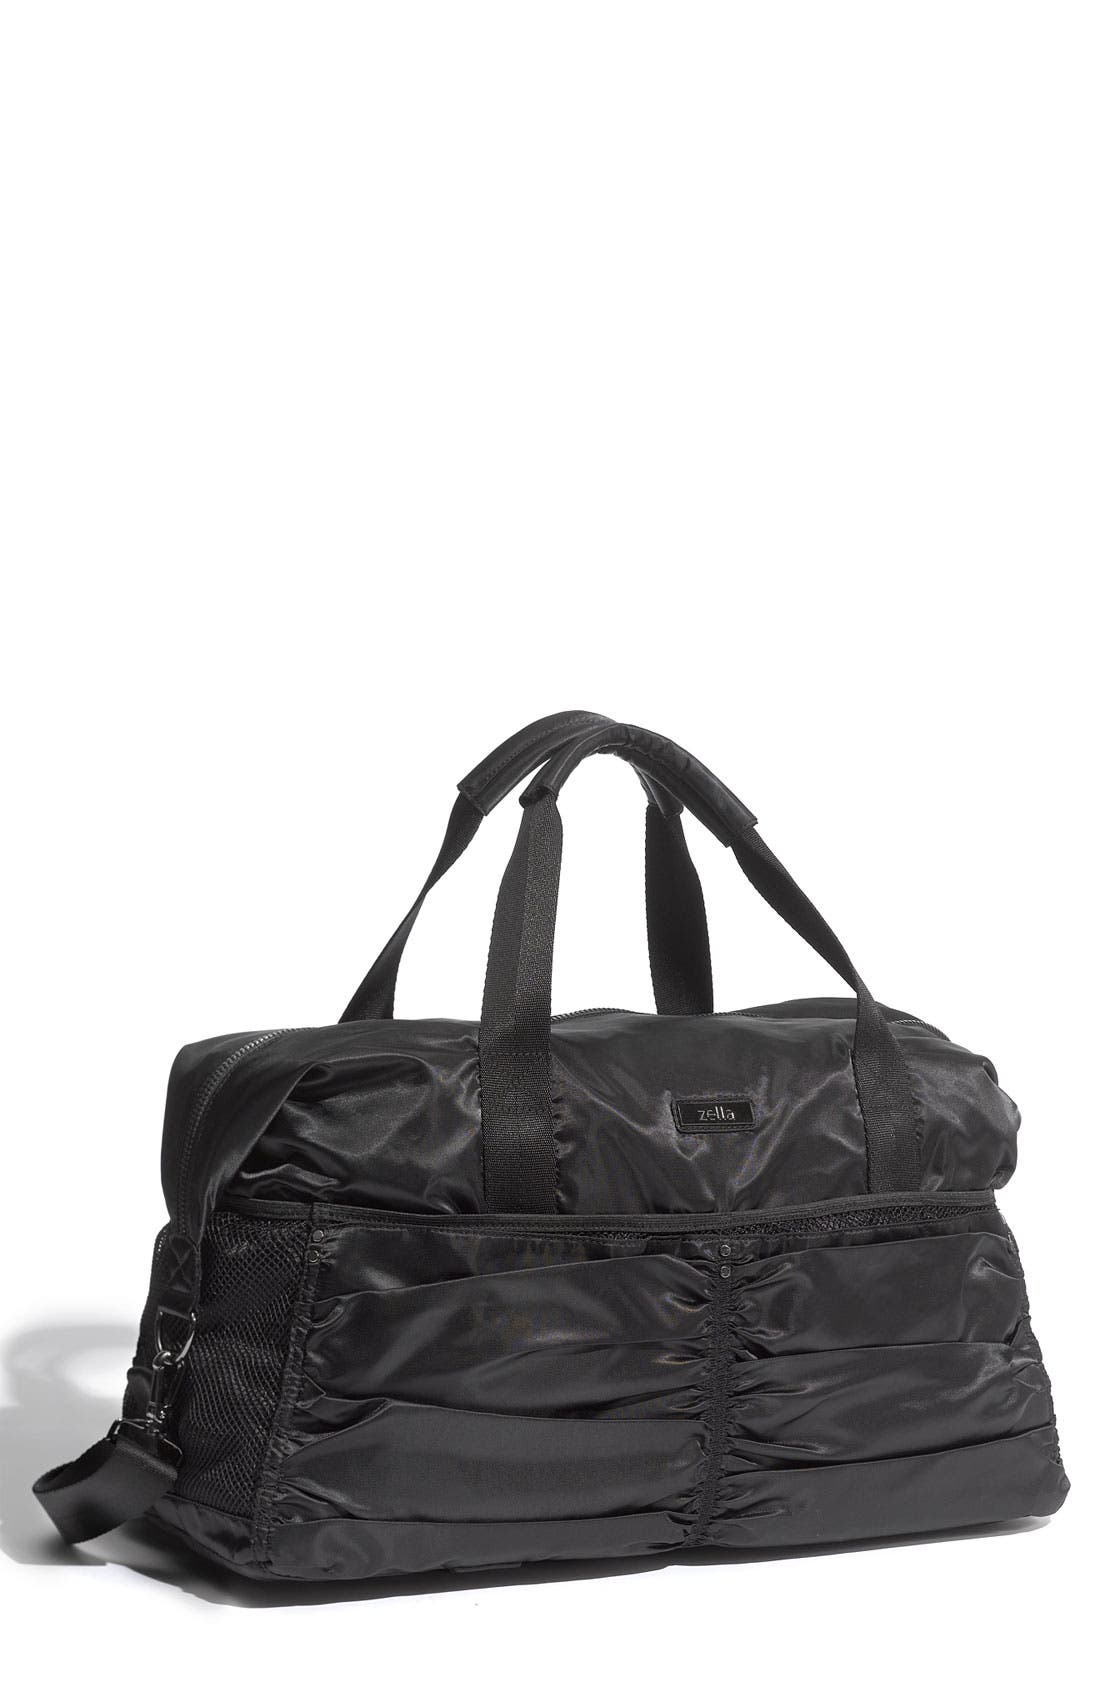 Alternate Image 1 Selected - Zella Gathered Duffel